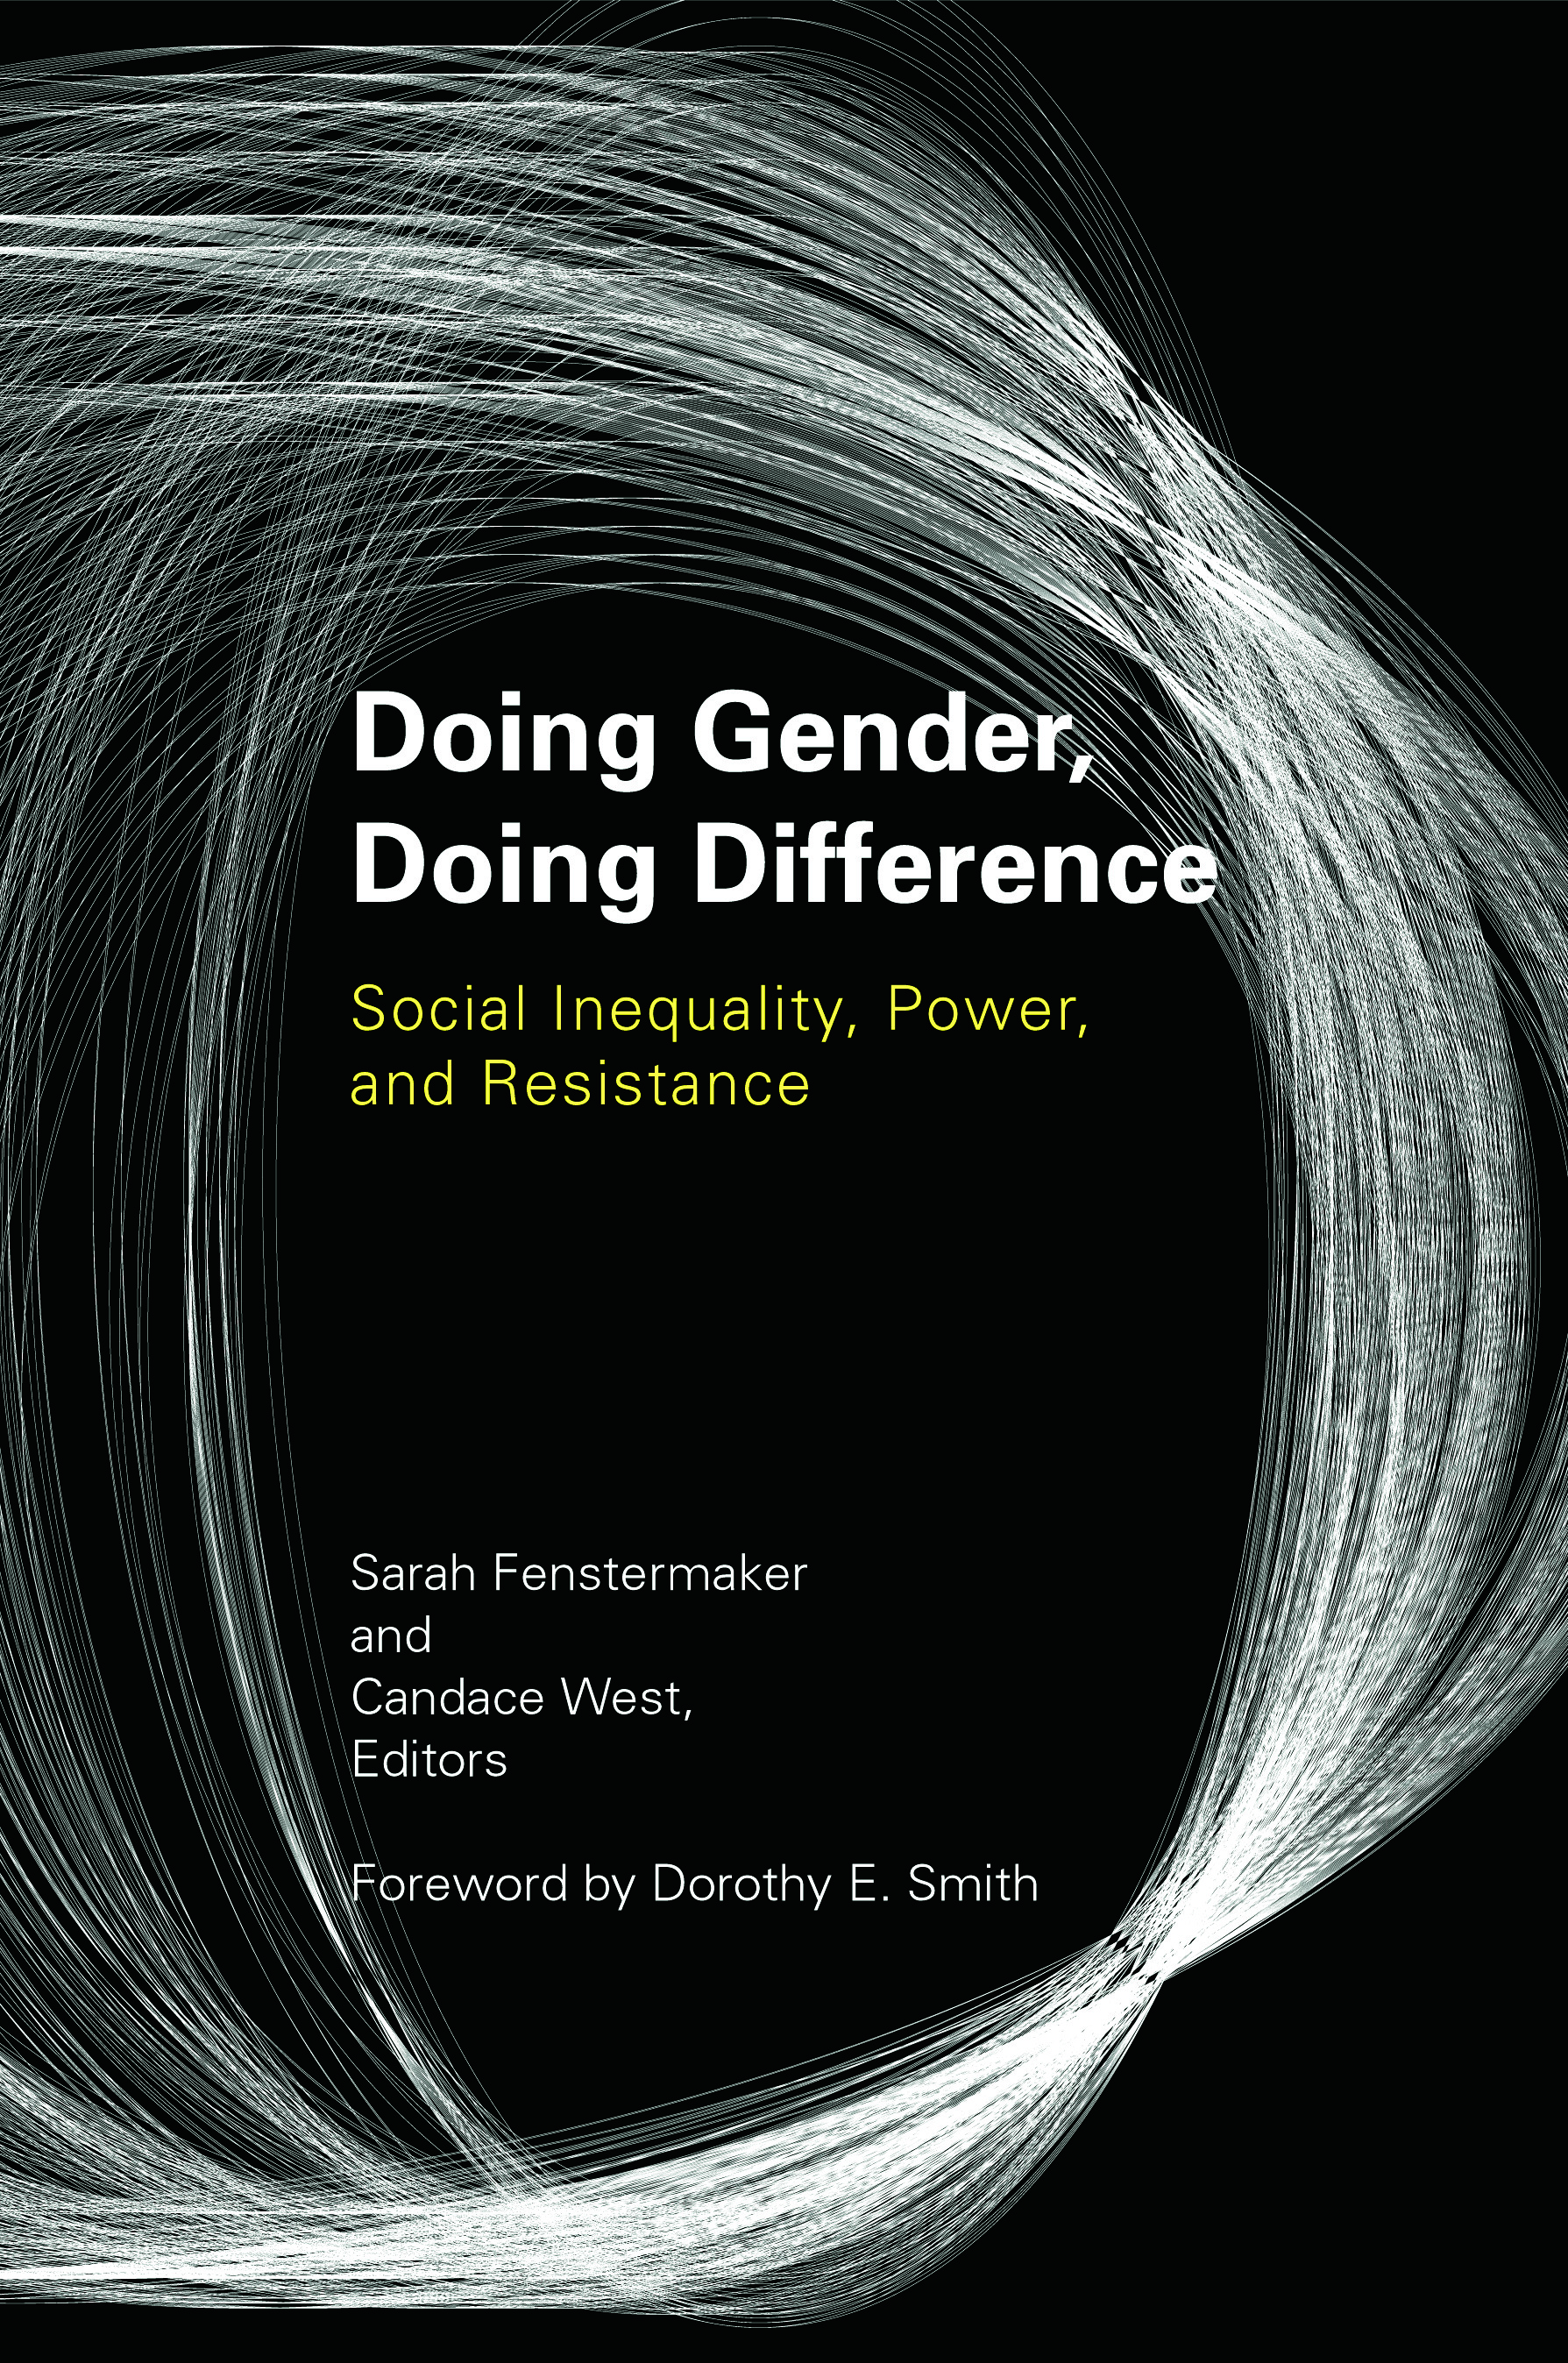 Doing Gender, Doing Difference